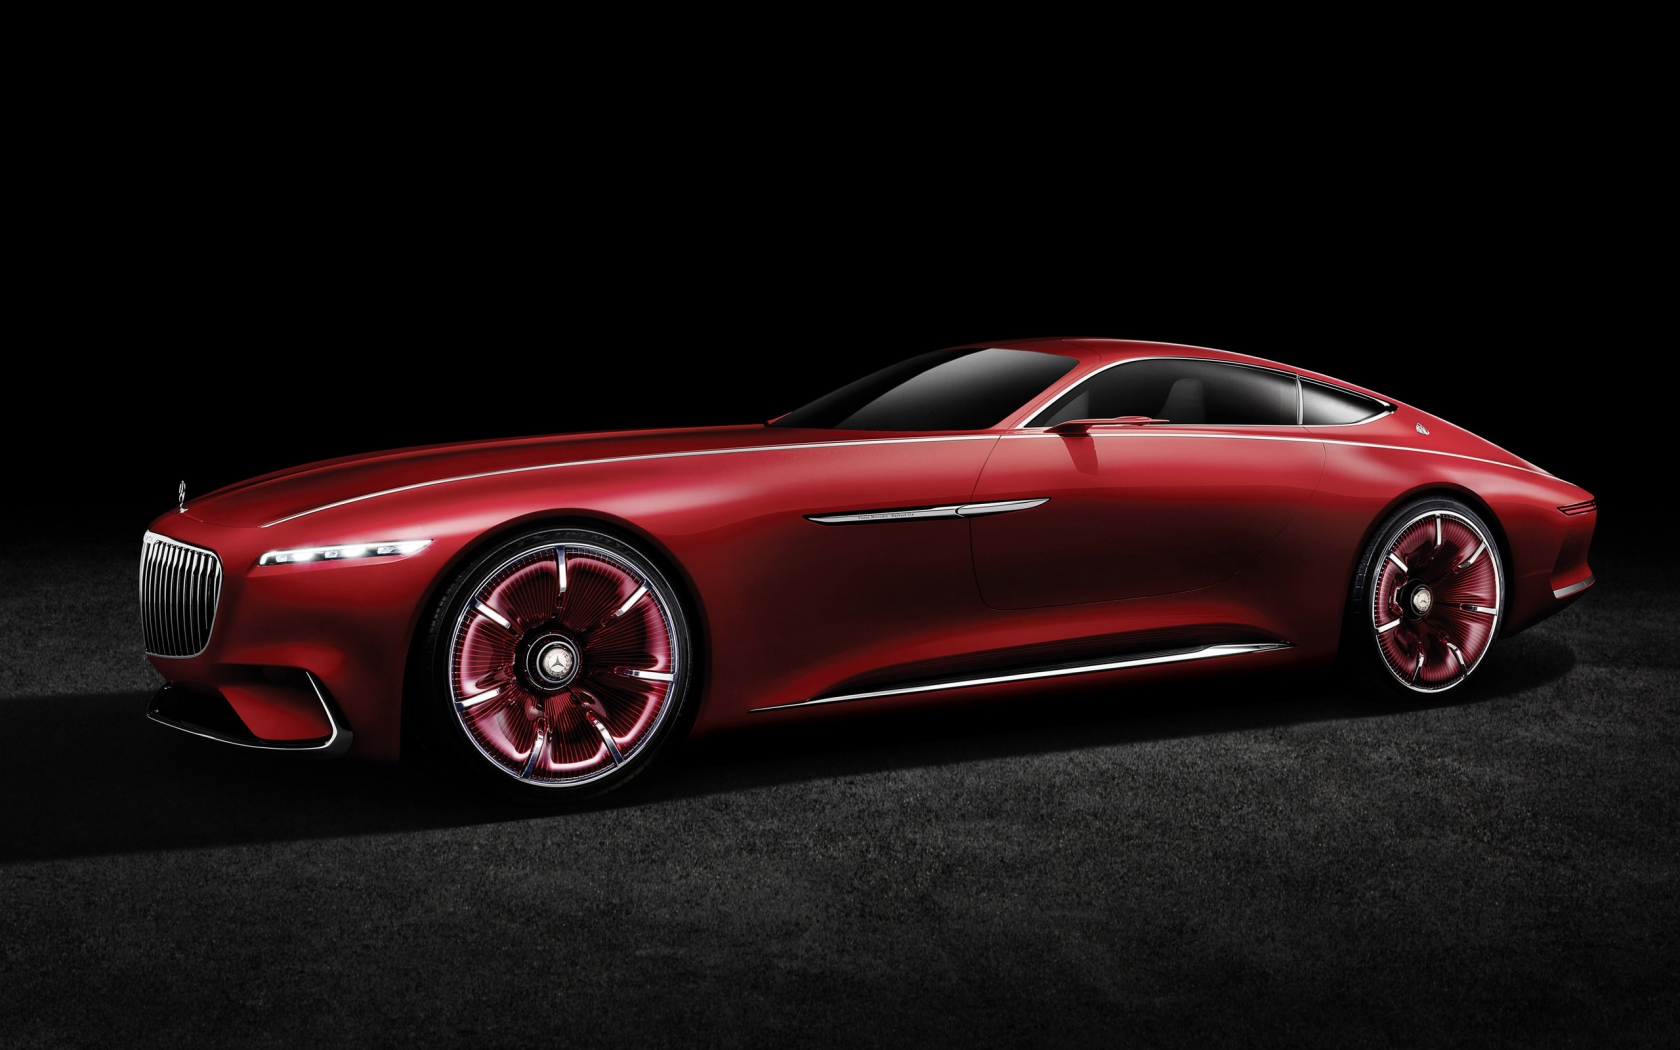 2016 Vision Mercedes Maybach 6 Side View for 1680 x 1050 widescreen resolution